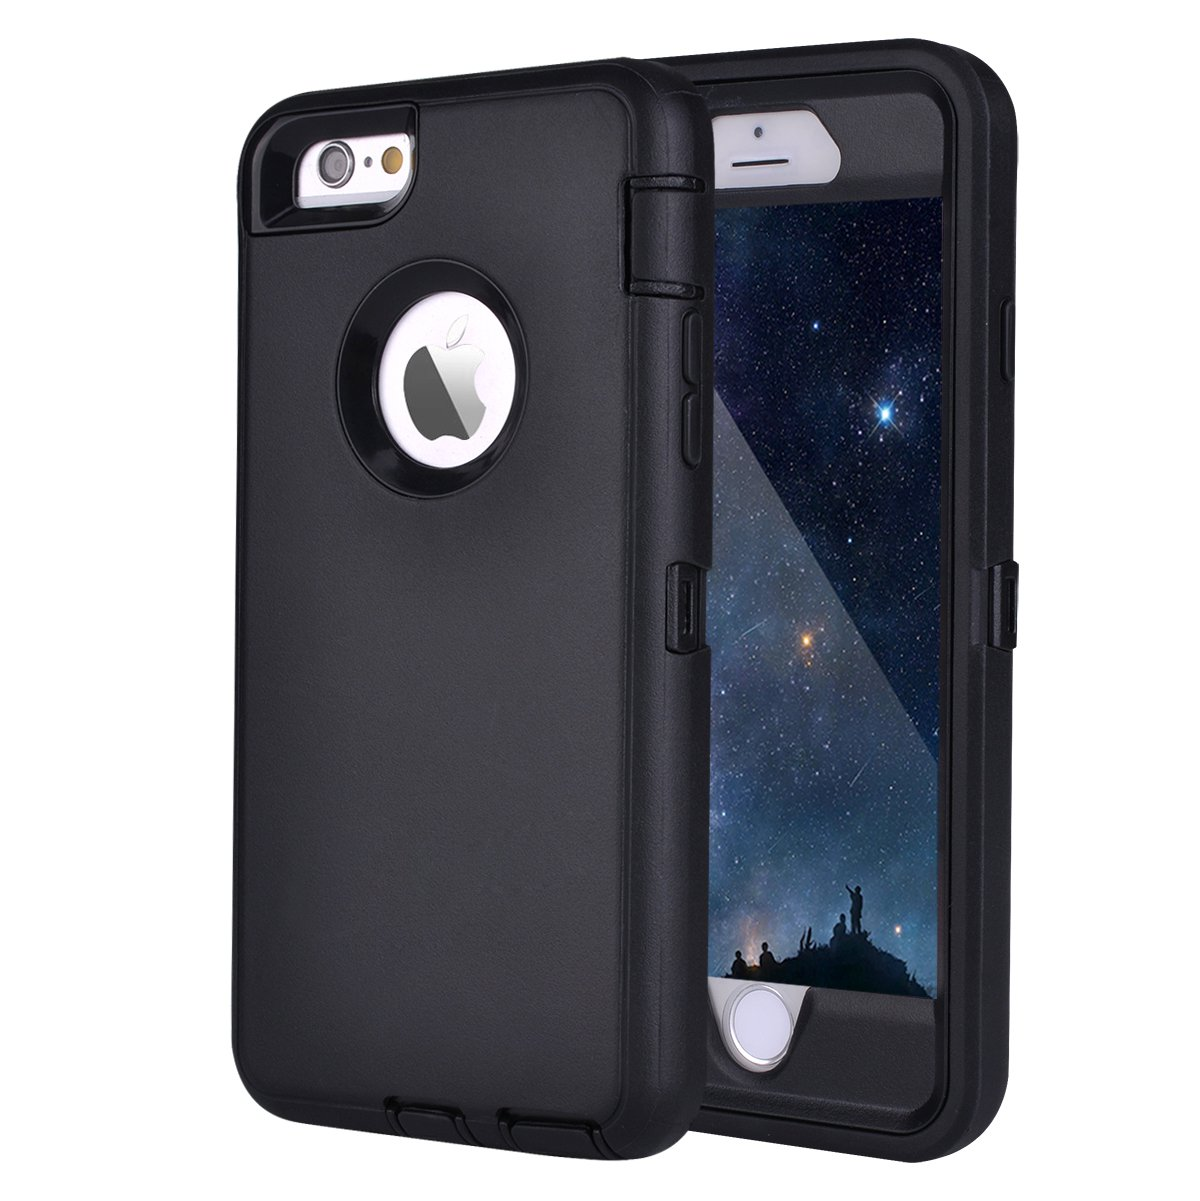 """iPhone 6 Plus/6S Plus Case, Maxcury Heavy Duty Shockproof Series Case for iPhone 6 Plus /6S Plus (5.5"""") with Built-in Screen Protector Compatible with All US Carriers (Black)"""